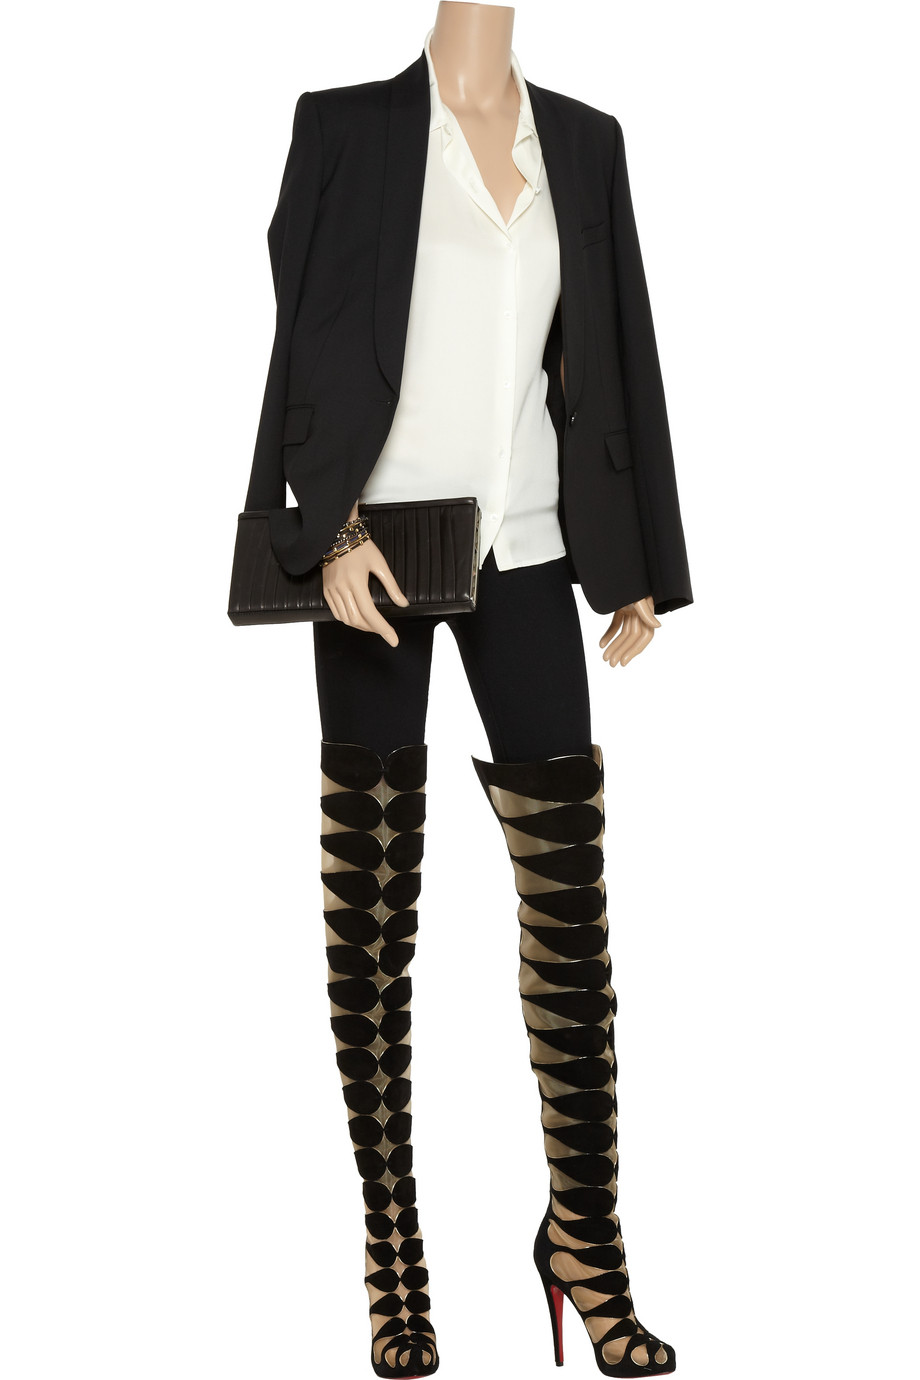 low priced 4ec5b 08a77 Christian Louboutin Black Lola Montes 140 Cutout Suede Thigh Boots